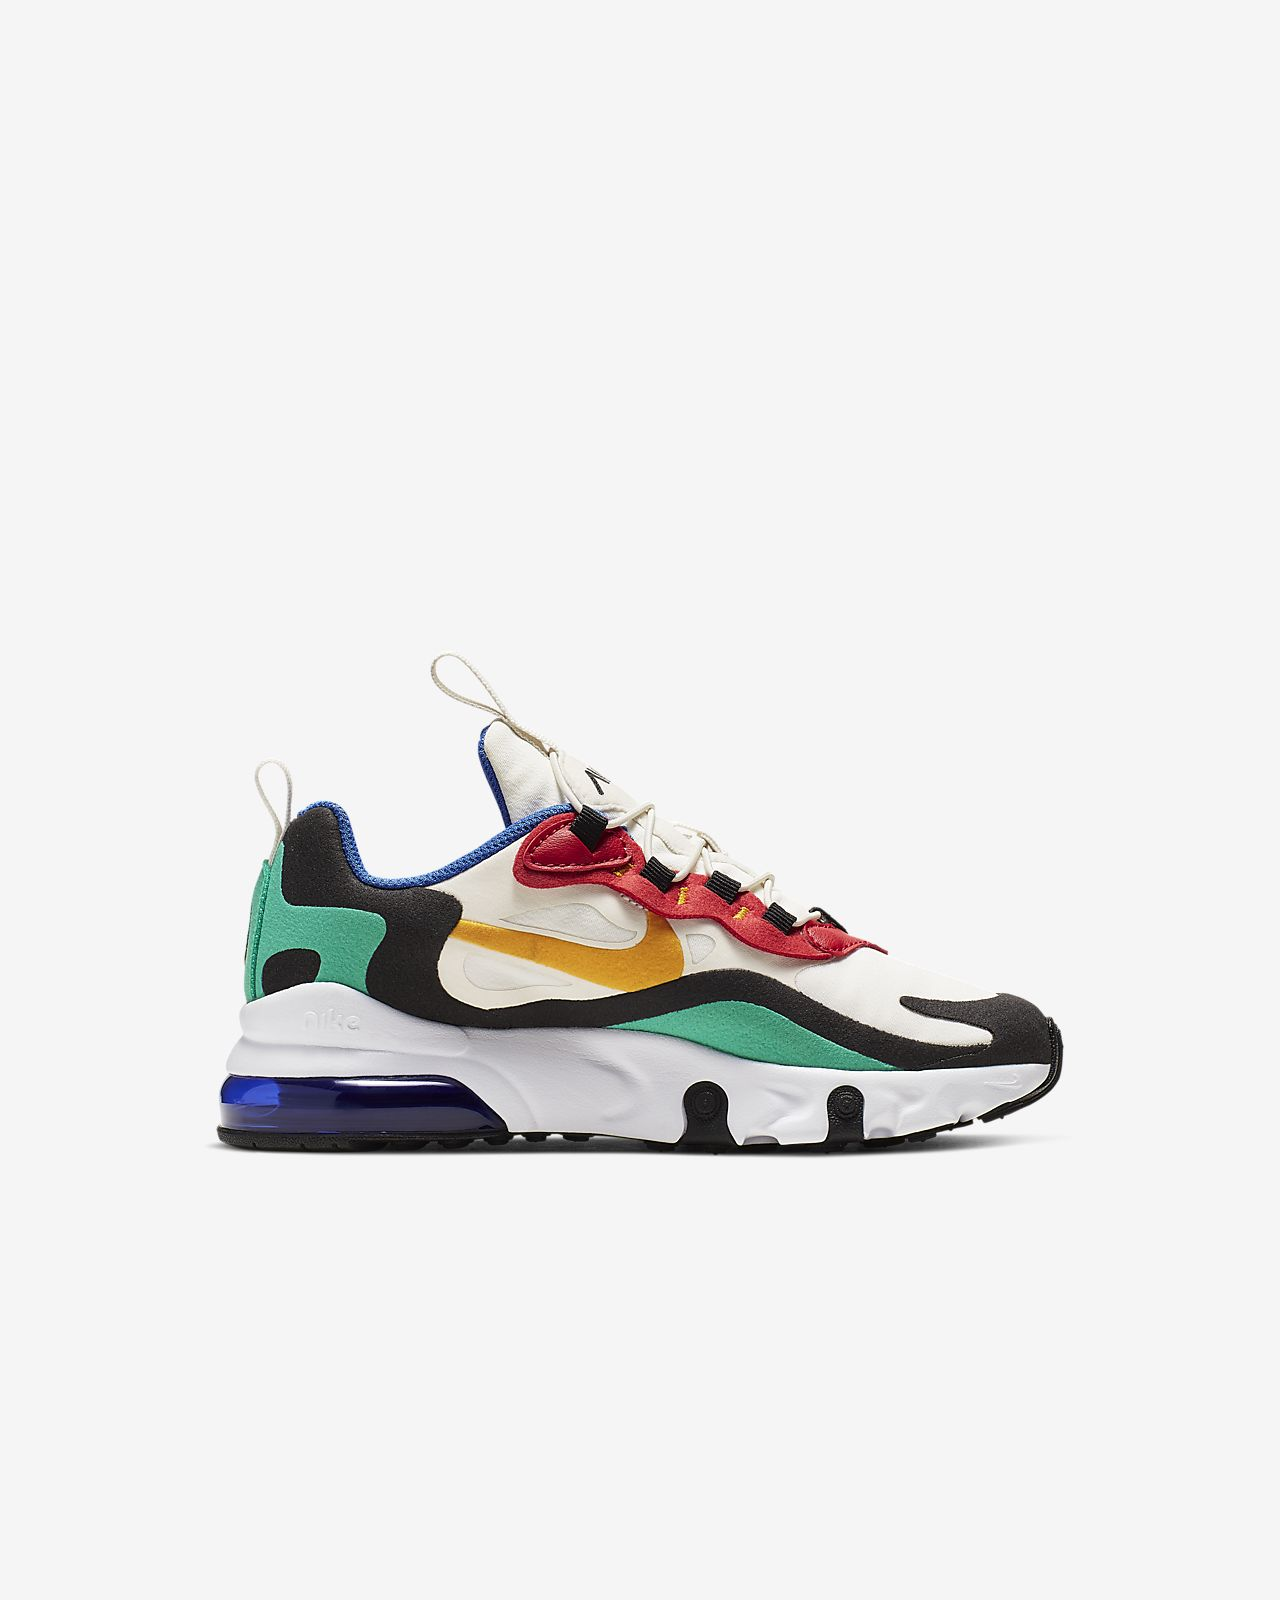 Nike Air Max 270 from withzapas on 21 Buttons